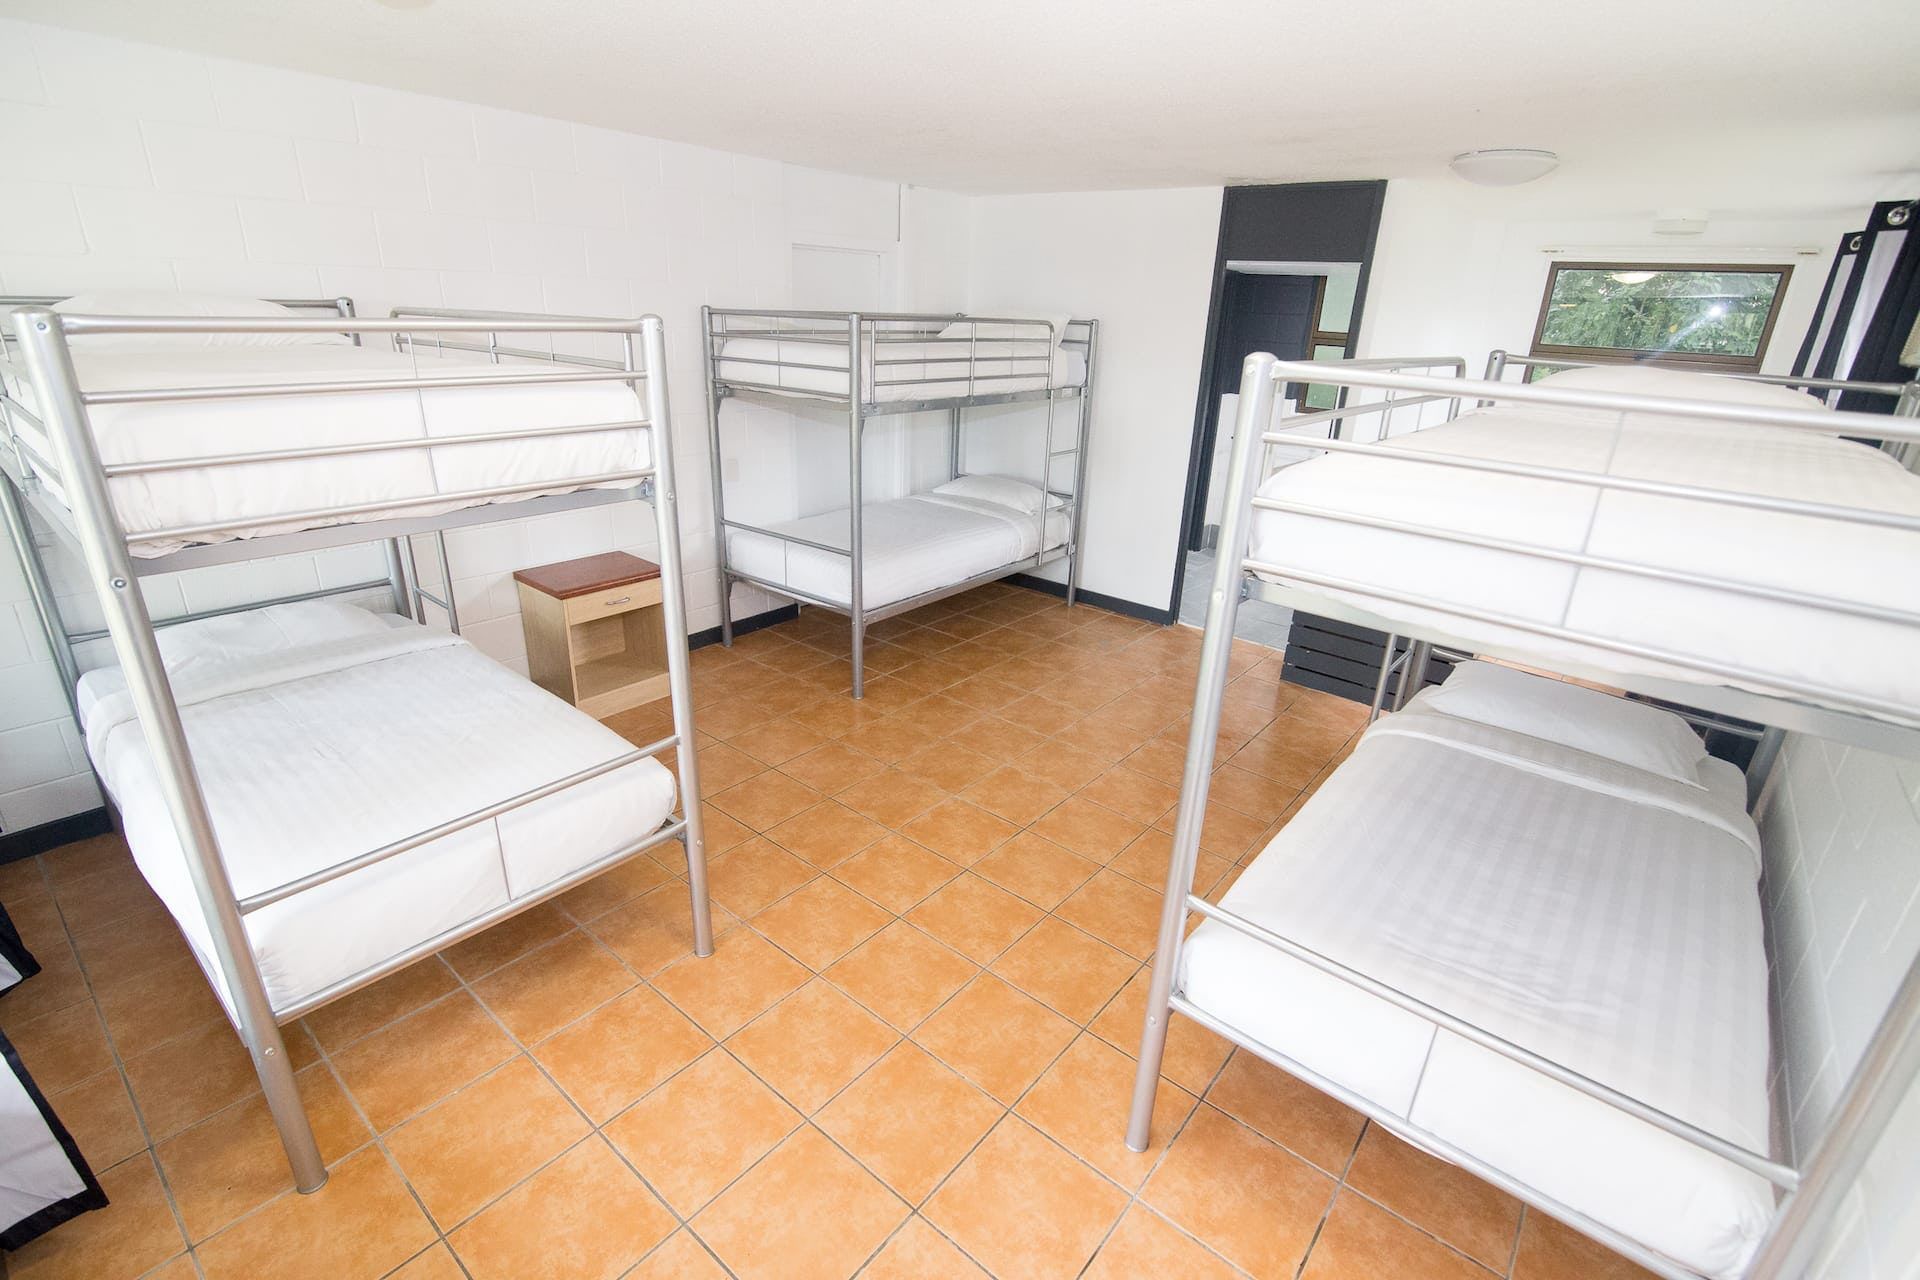 6 bed ensuite dorm at base airlie beach hostel